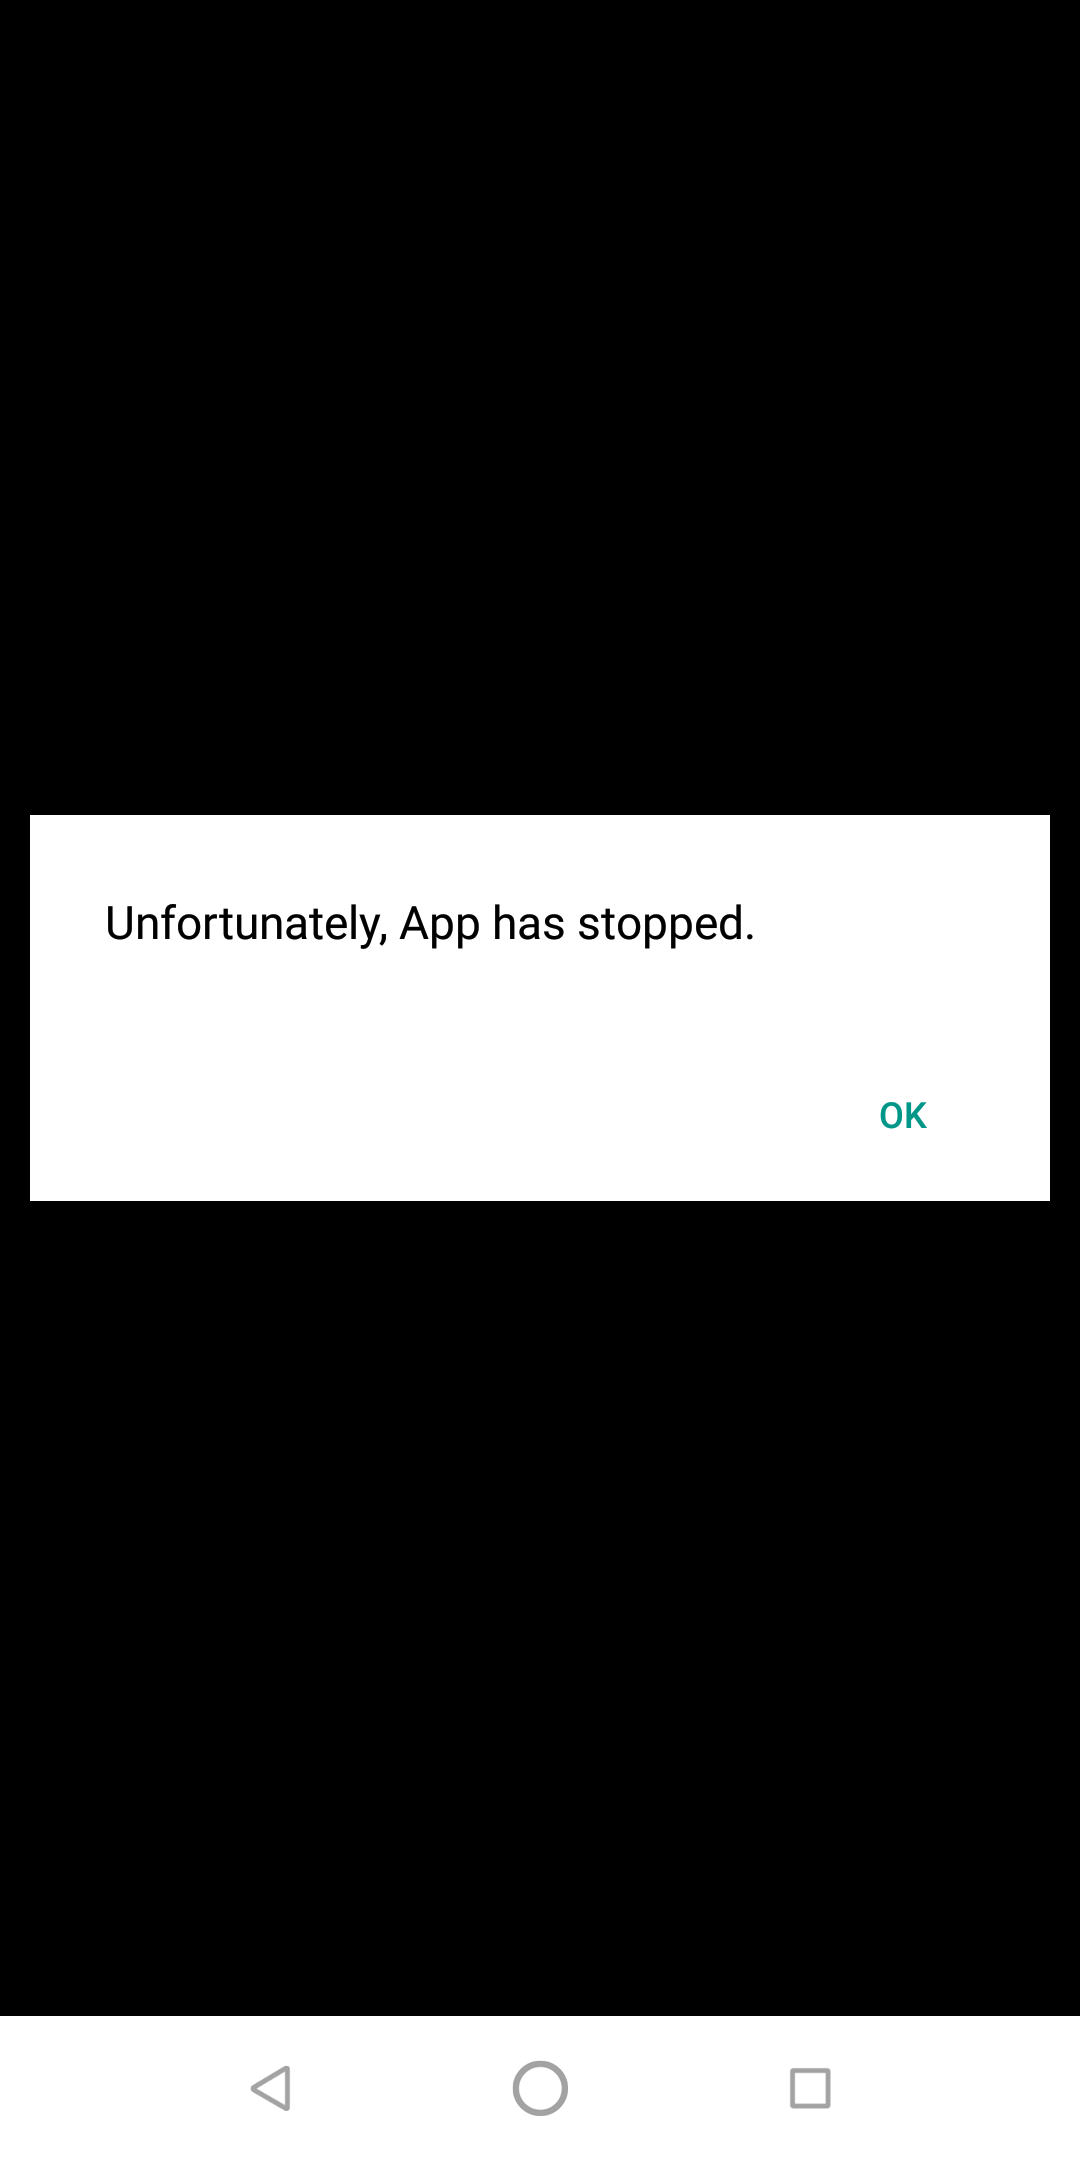 My Google photos is not working since 6 months unfortunately